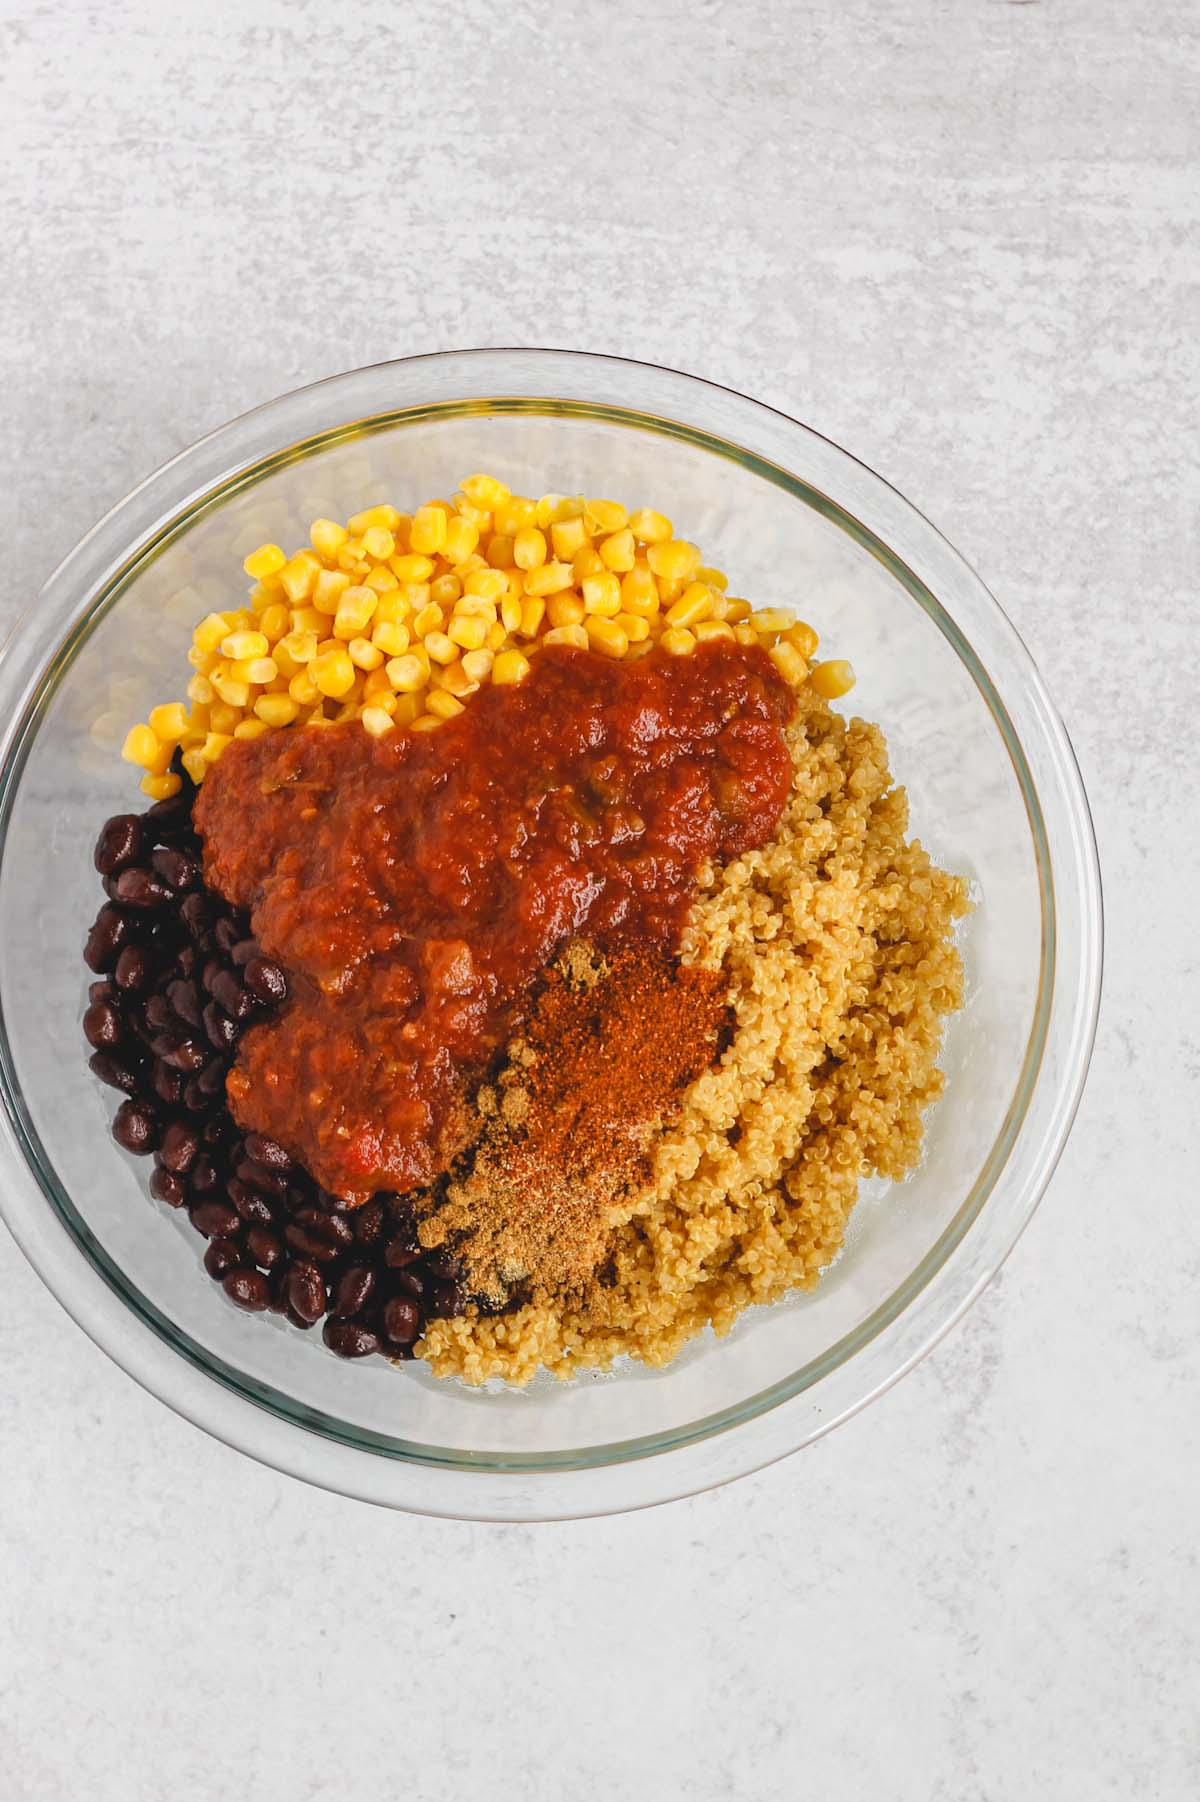 ingredients for stuffed peppers in a glass mixing bowl